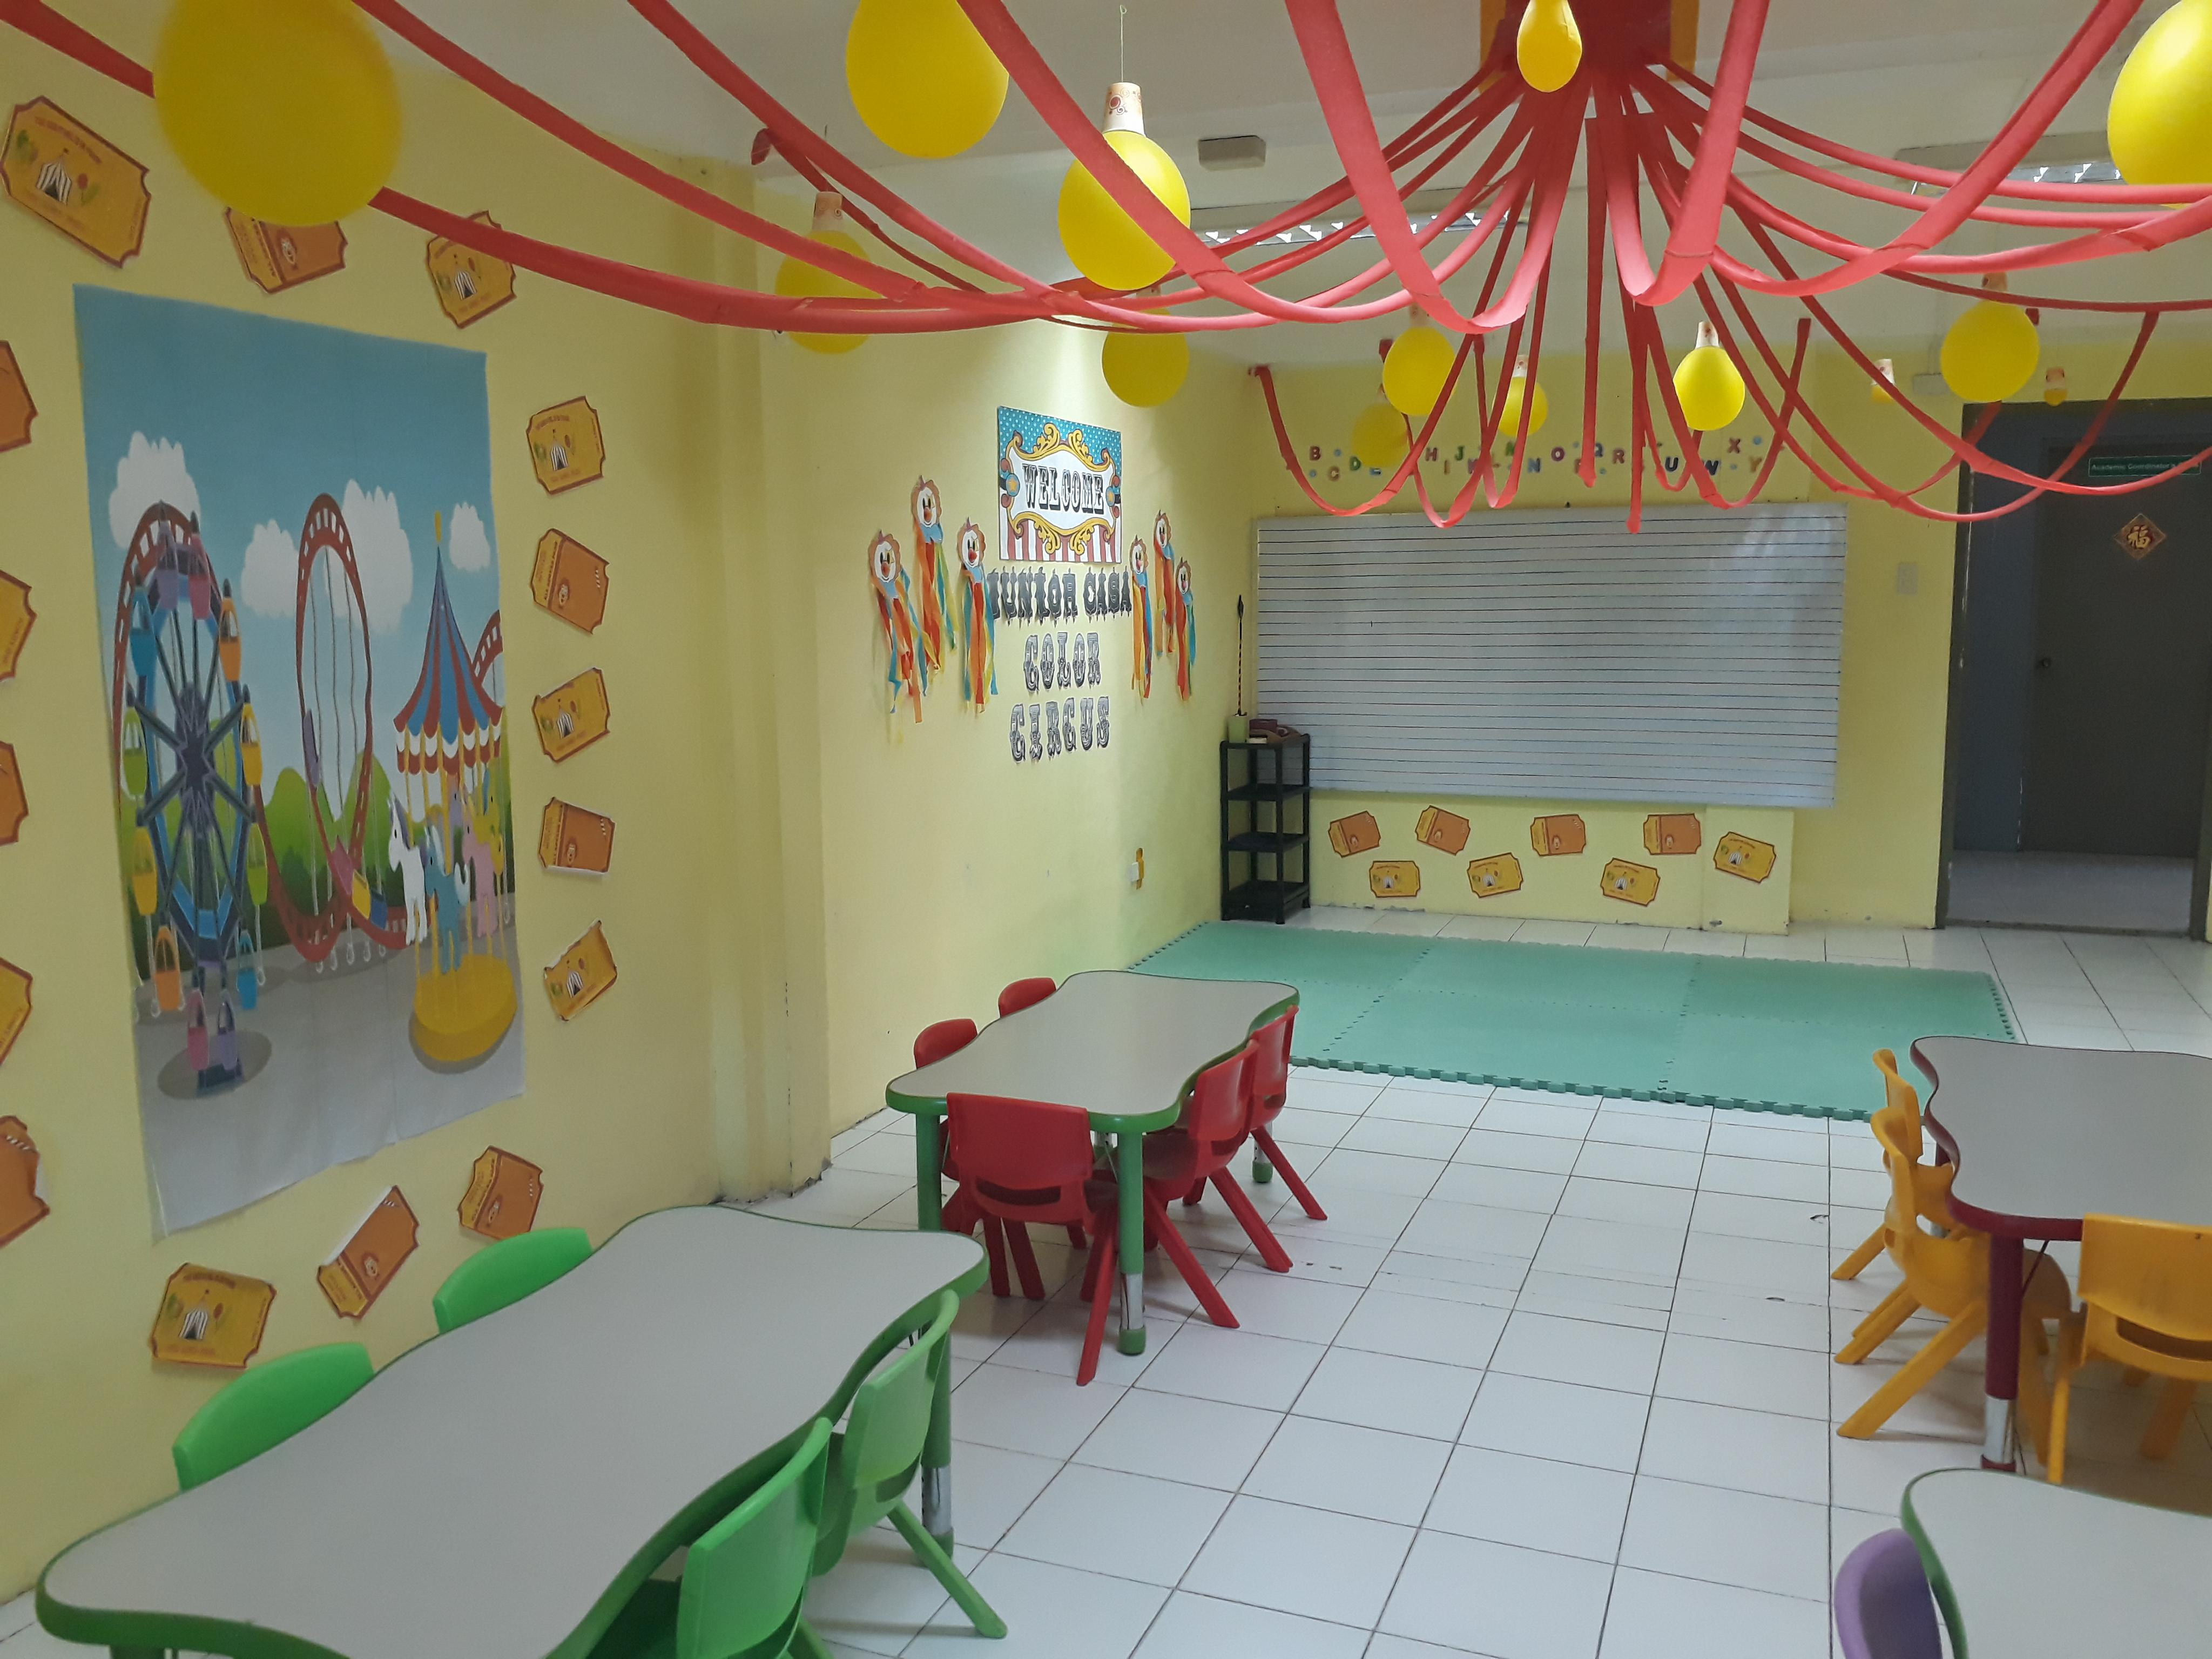 The Very First Room I Asked To Check Out Was Preschool Classroom Wanted See What Layout And If It Conducive Learning